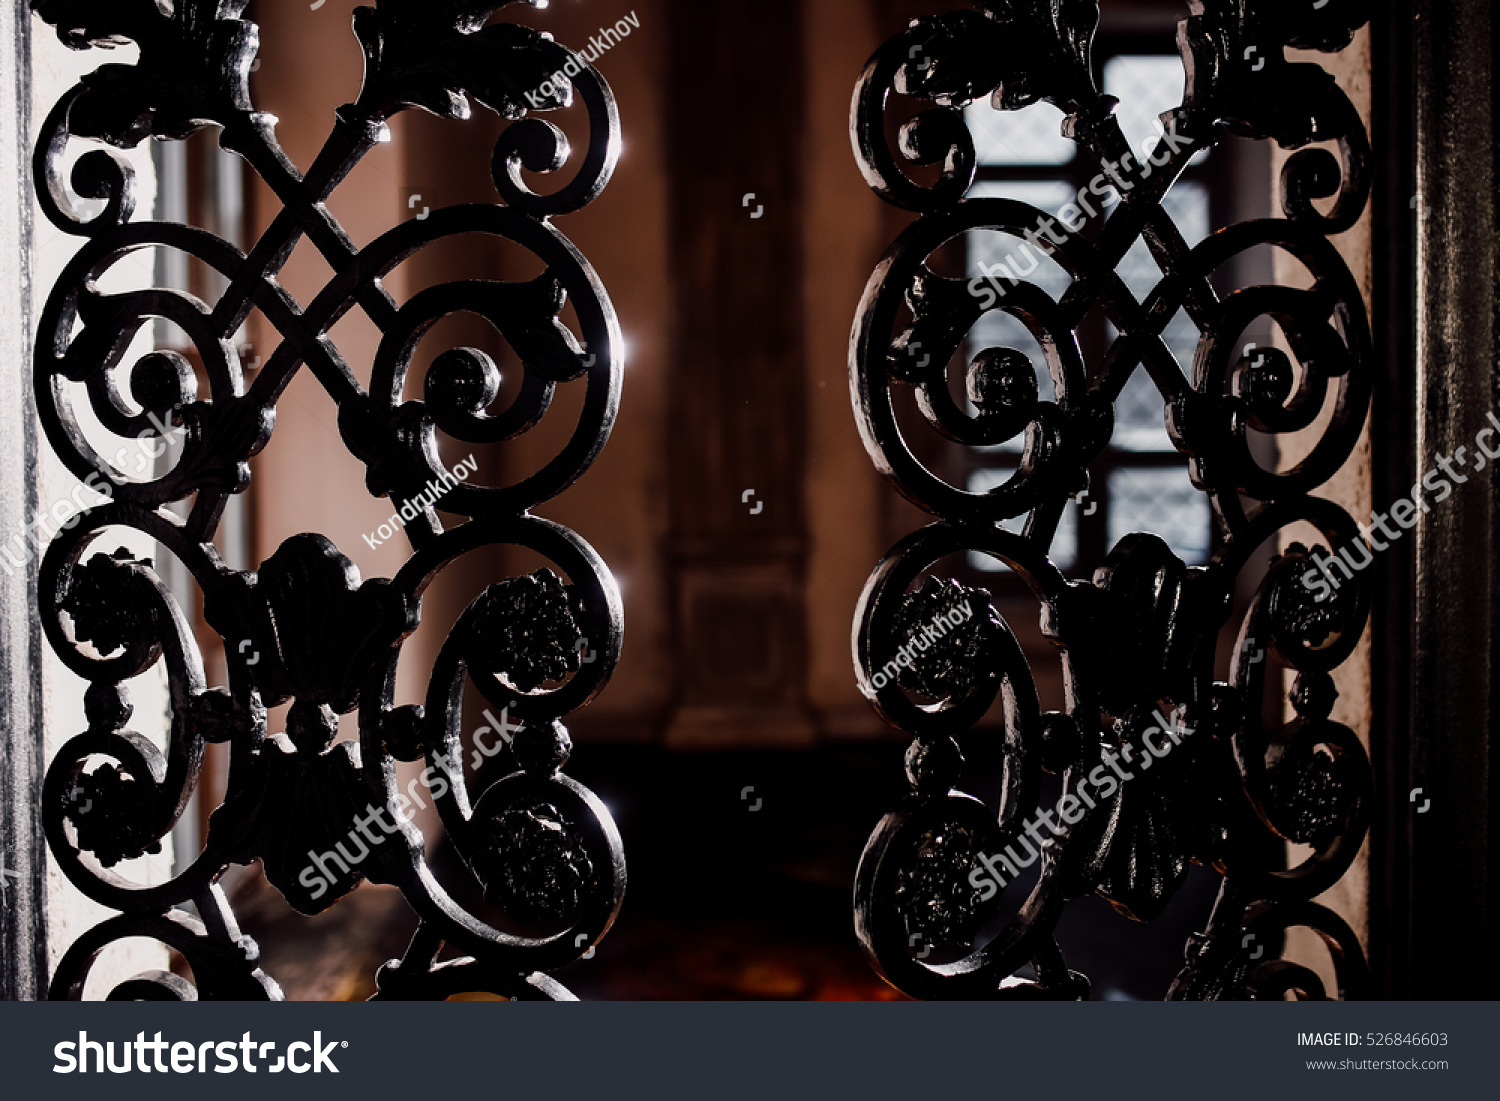 Black iron gate stock photo shutterstock